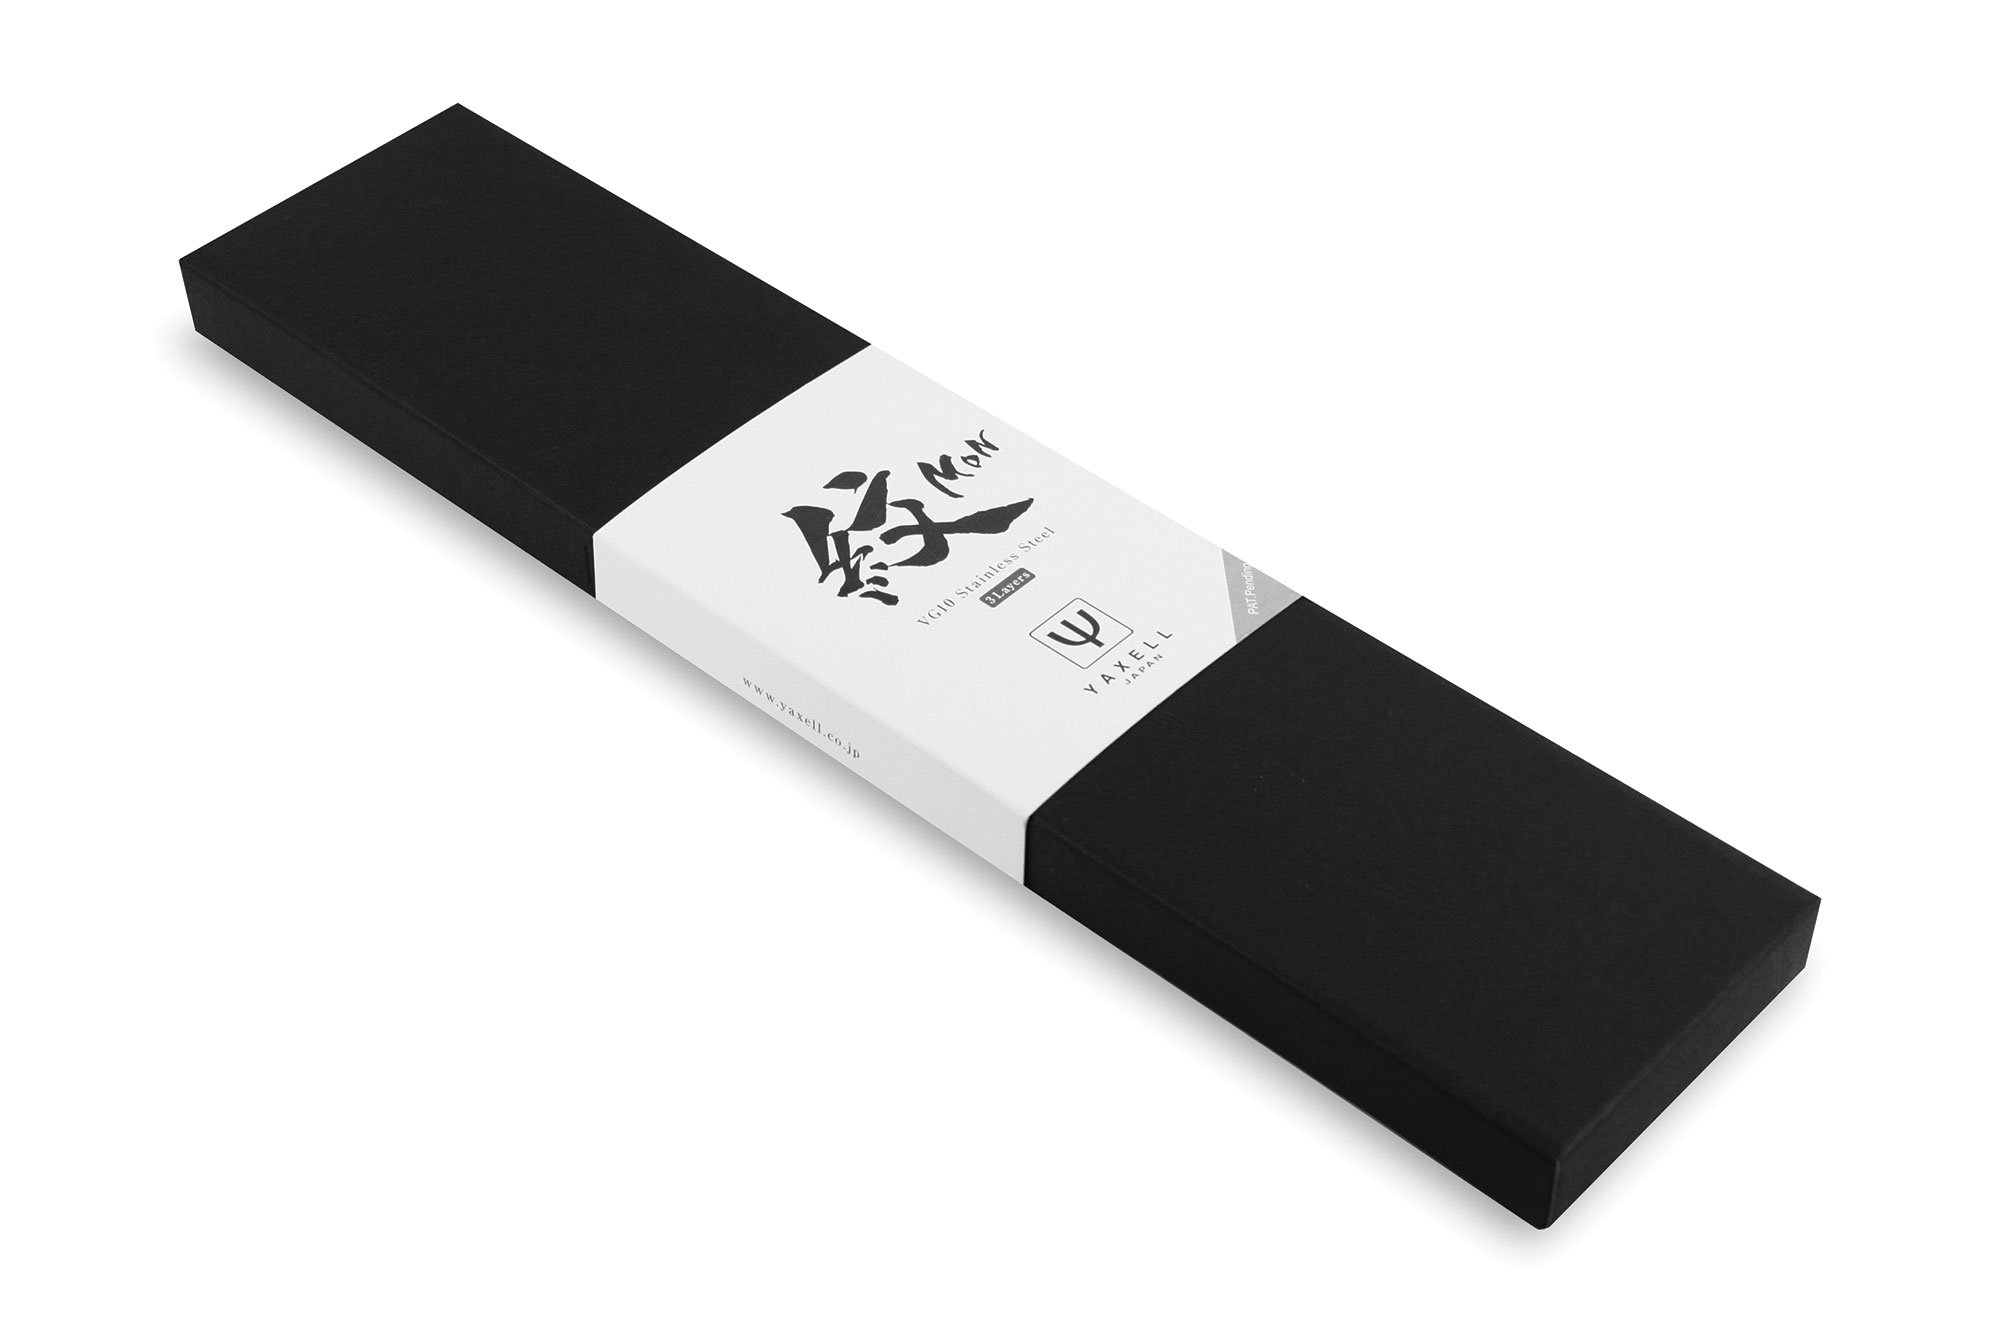 Yaxell Mon 8'' Chef's Knife - Made in Japan - VG10 Stainless Steel Gyuto with Micarta Handle by Yaxell (Image #6)